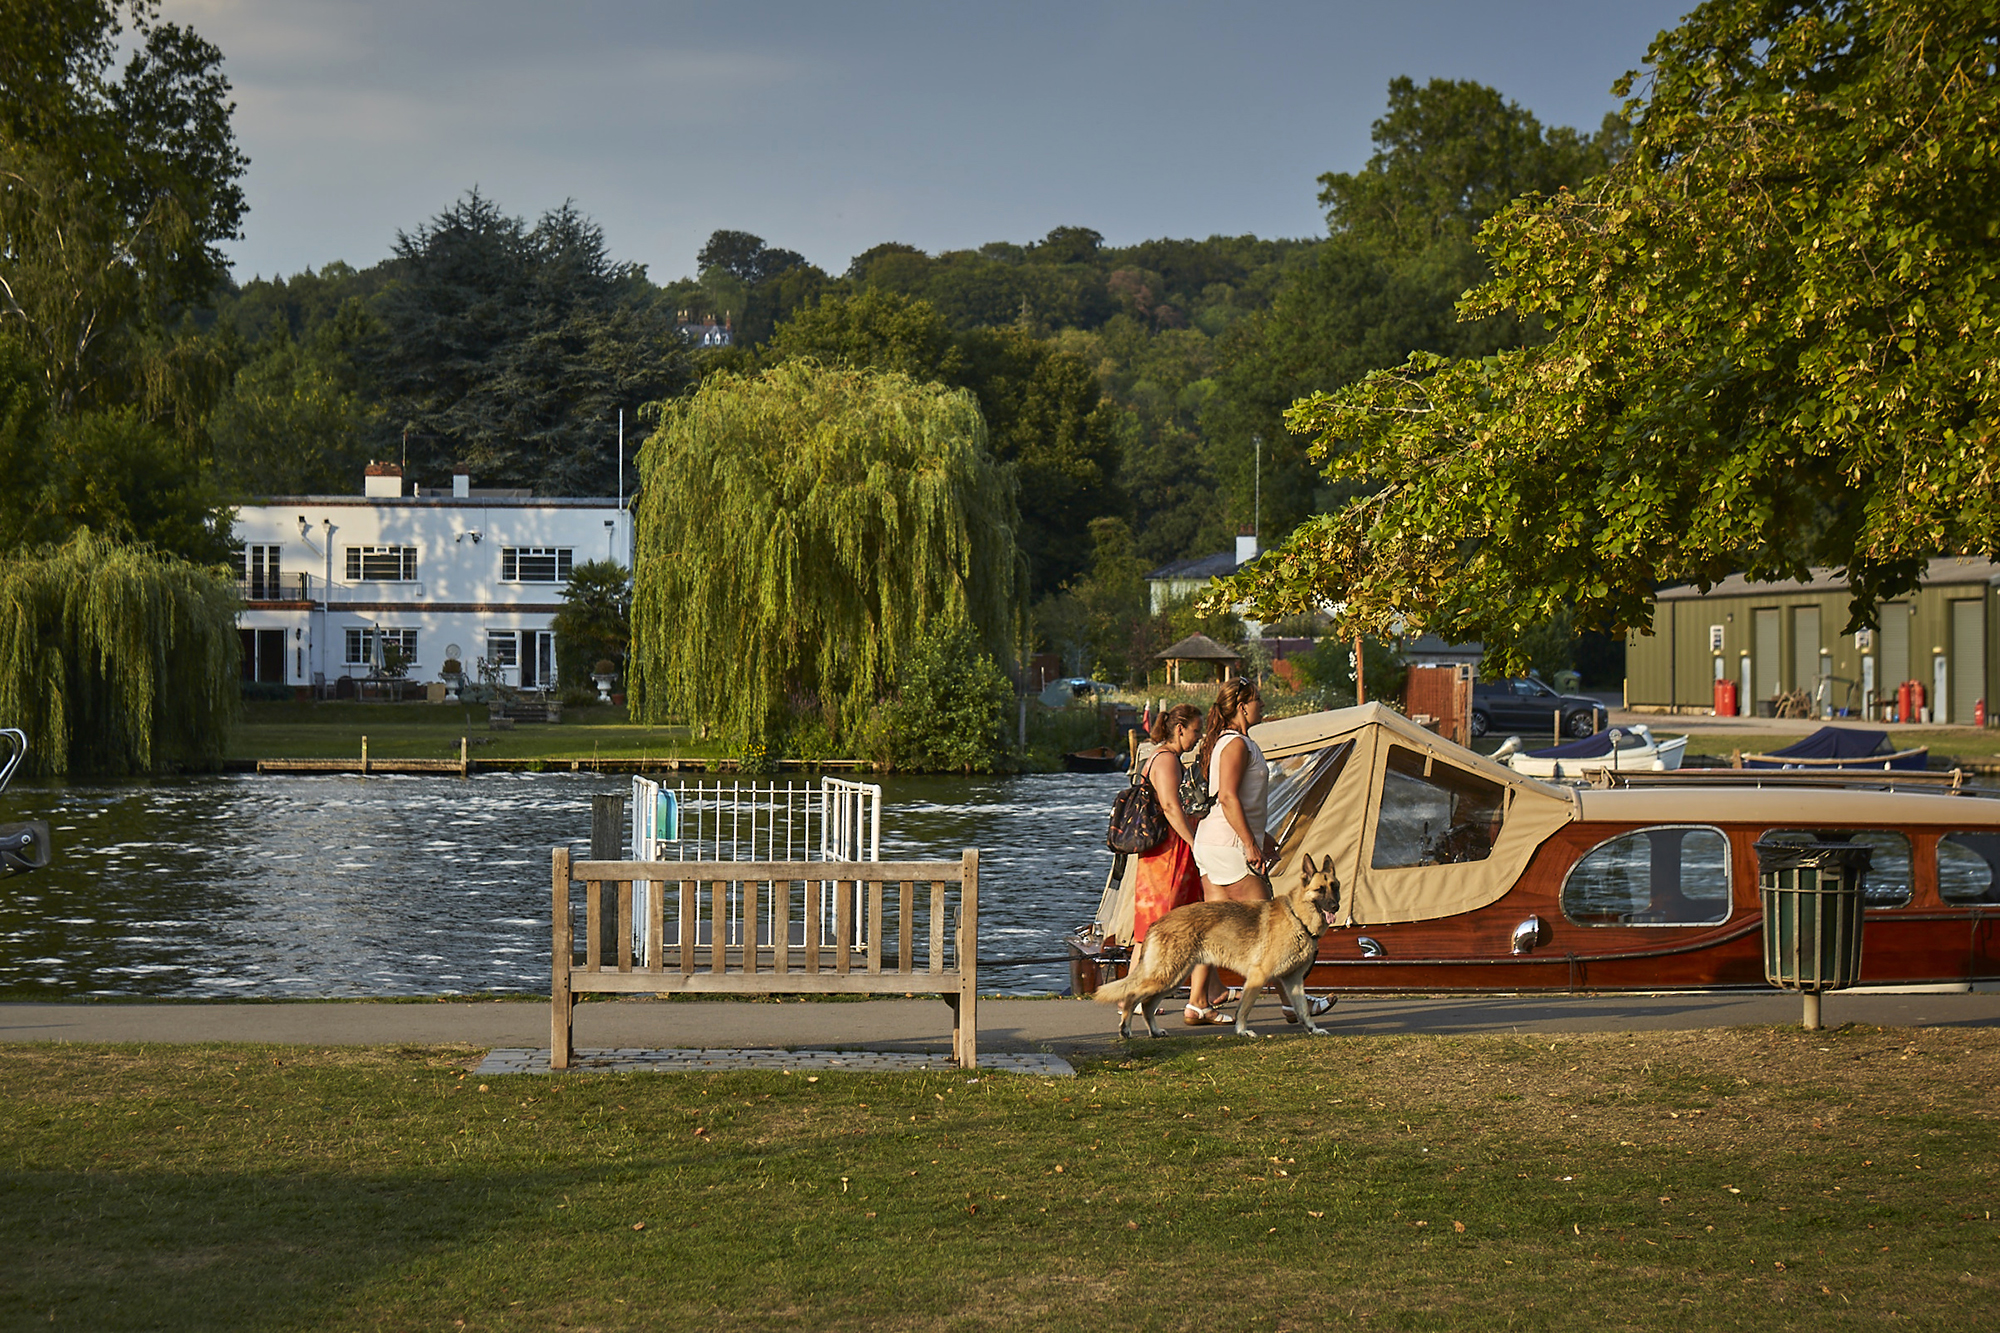 Henley Town Council - Picturesque view of the river and trees around Henley